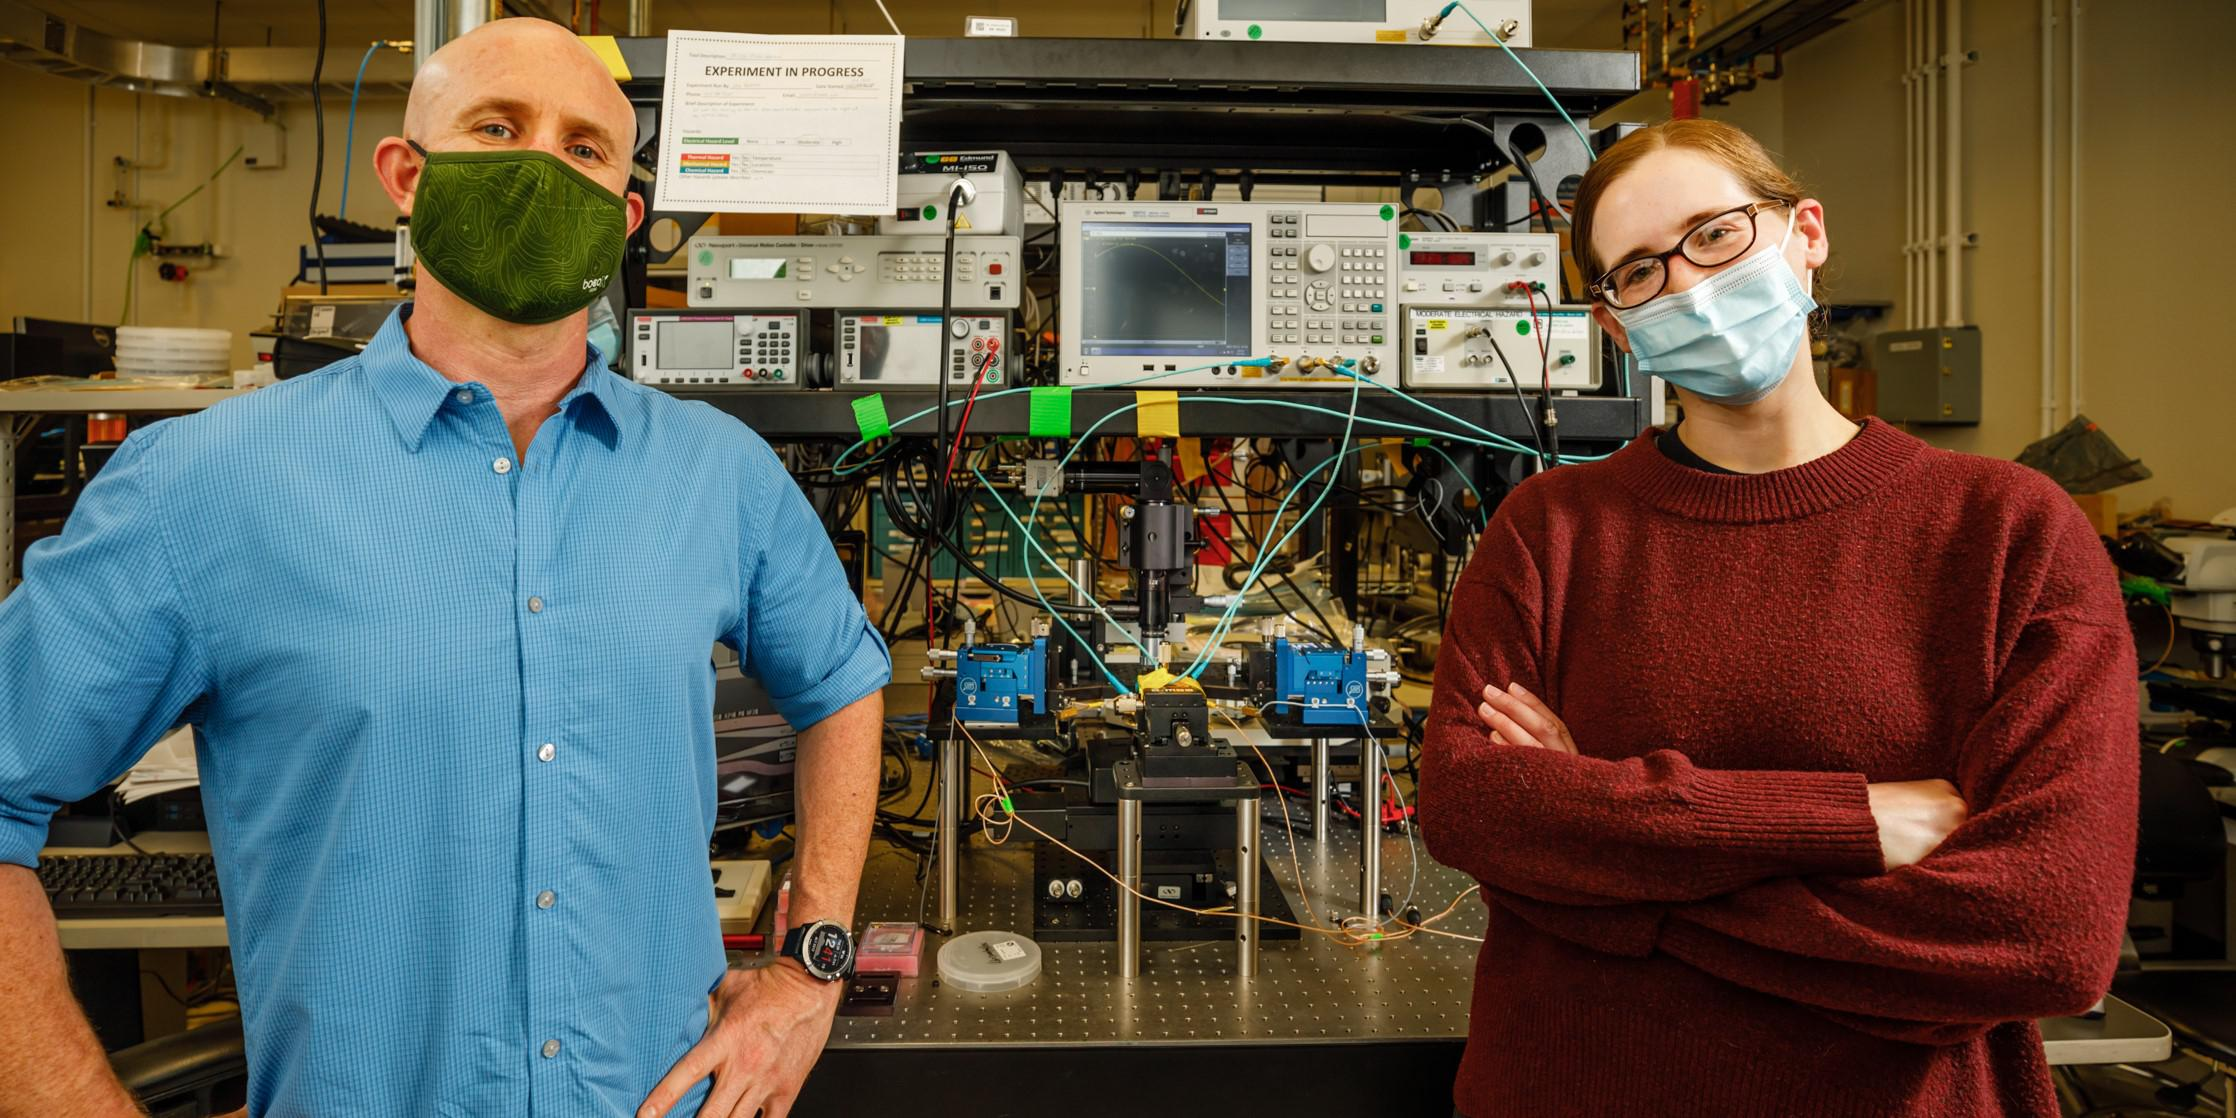 Matt Eichenfield (l) and Lisa Hackett, scientists at Sandia National Labs, recently created a groundbreaking acoustic circulator, a key radio component that separates transmitted and received signals, and is much smaller in size. Credit: Sandia National Labs/Bret Latter